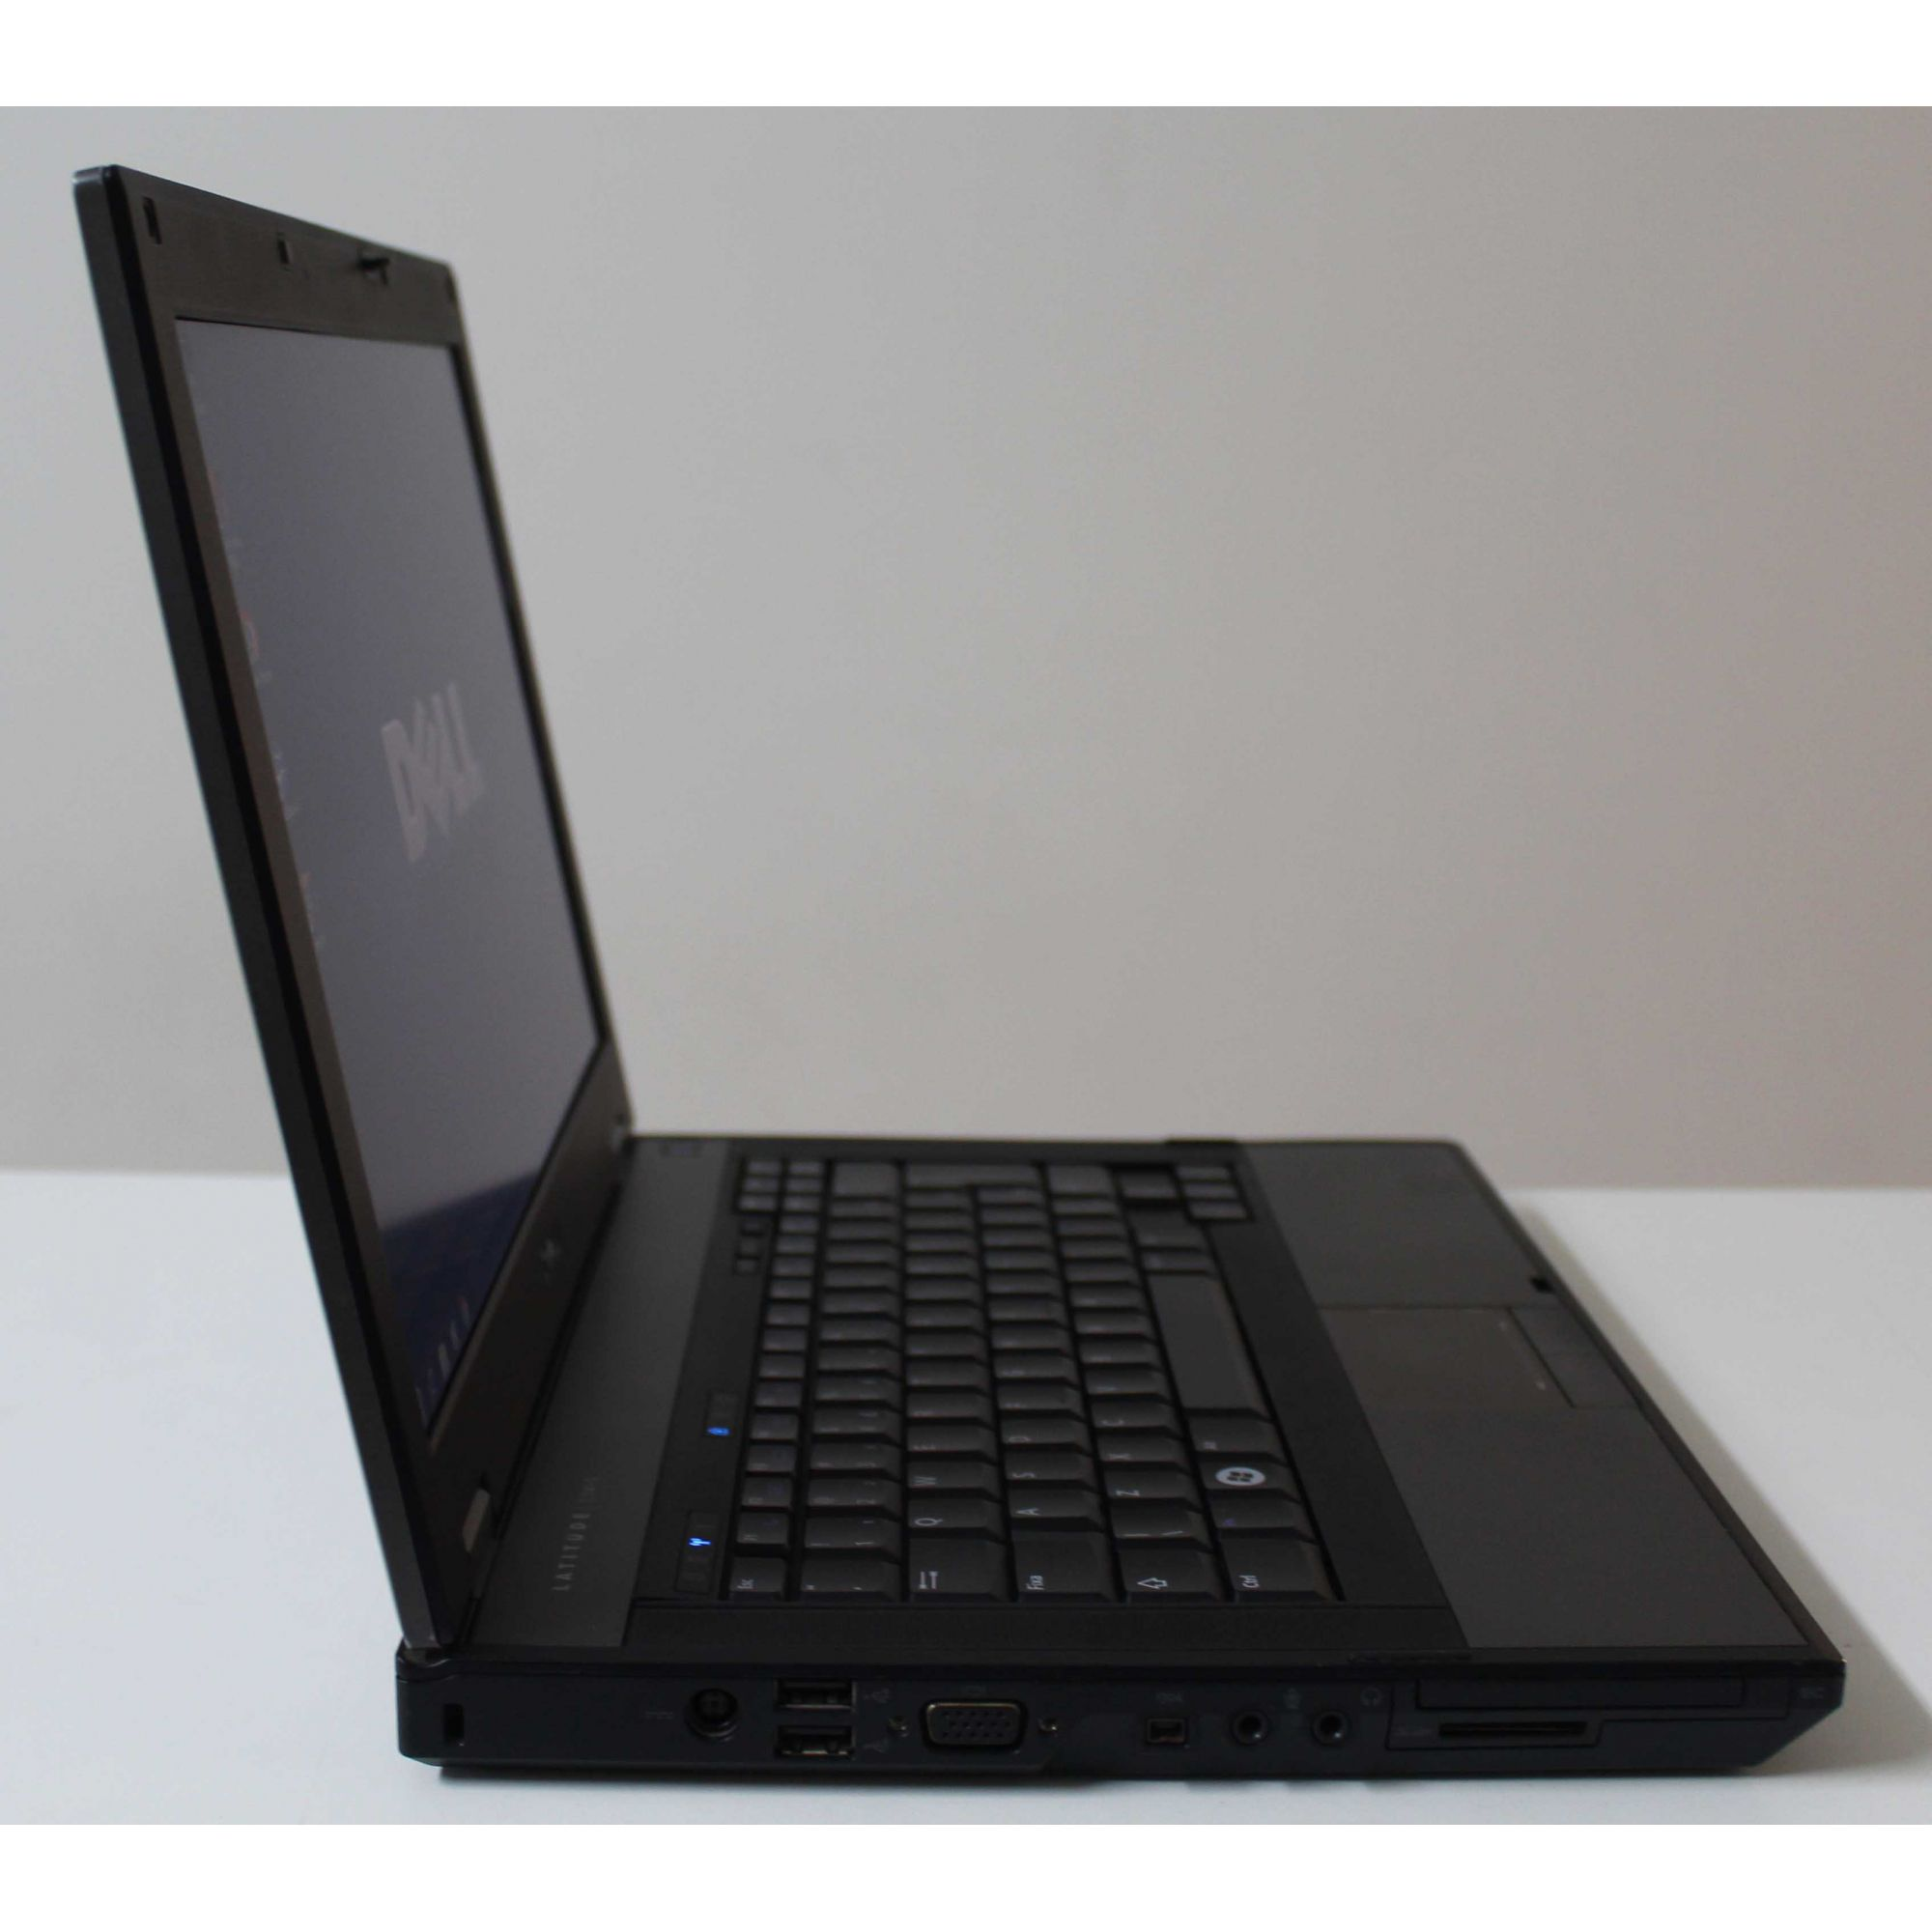 "Notebook Dell Latitude E5410 14.1"" Intel Core i5 2.67GHz 4GB HD-320GB"